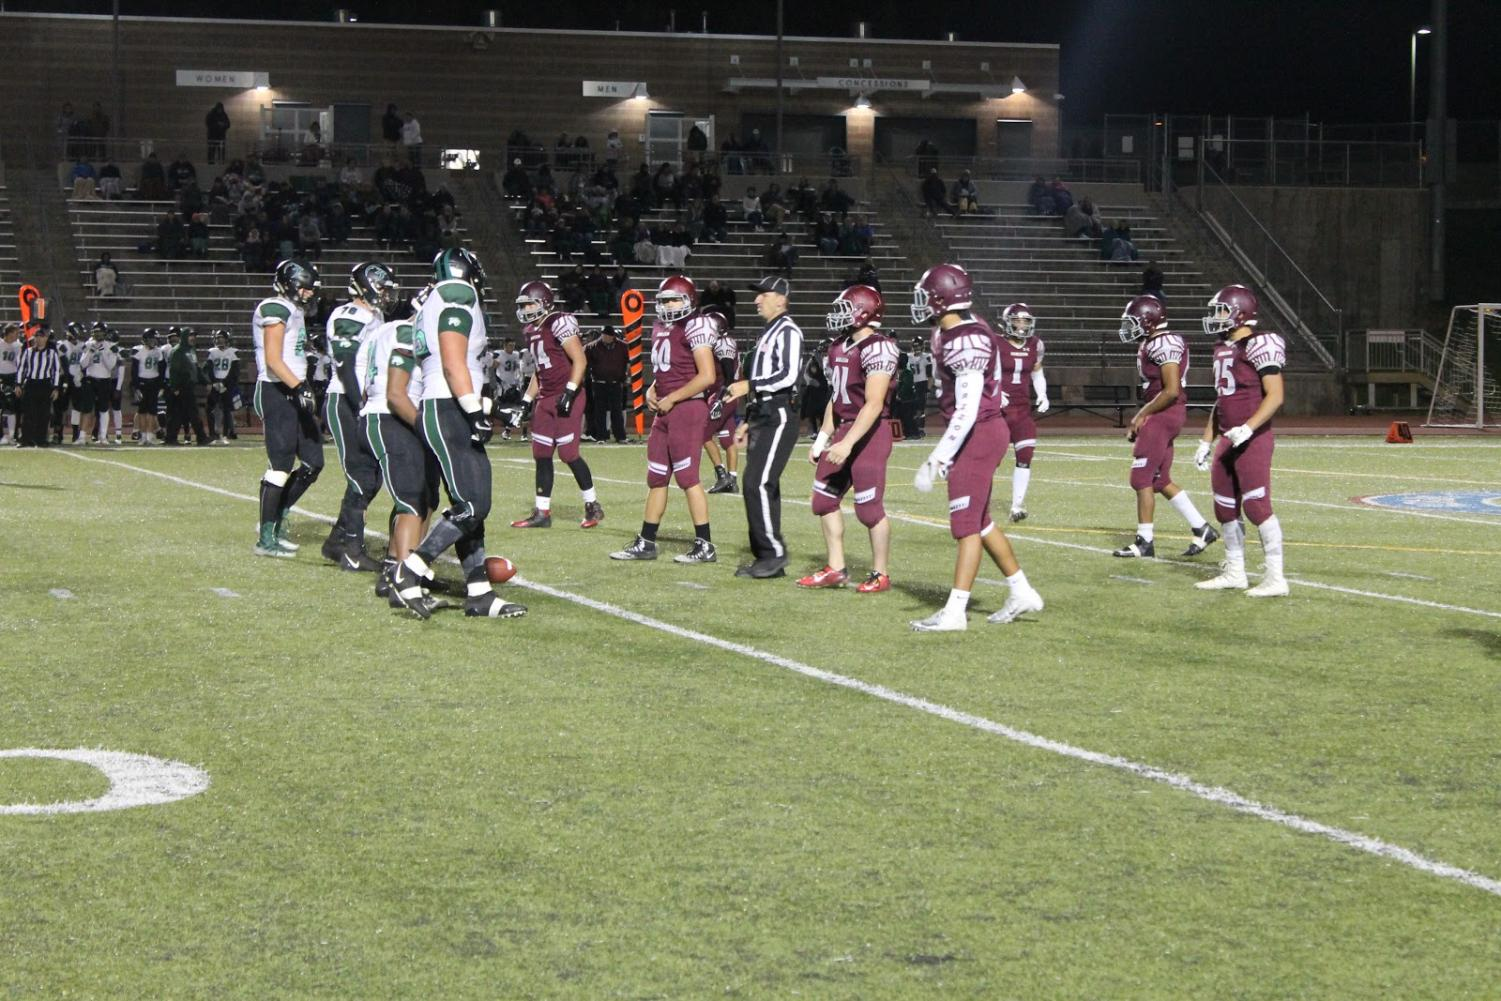 Horizon's defensive line, ready to take on Fossil Ridge's offense during the homecoming game